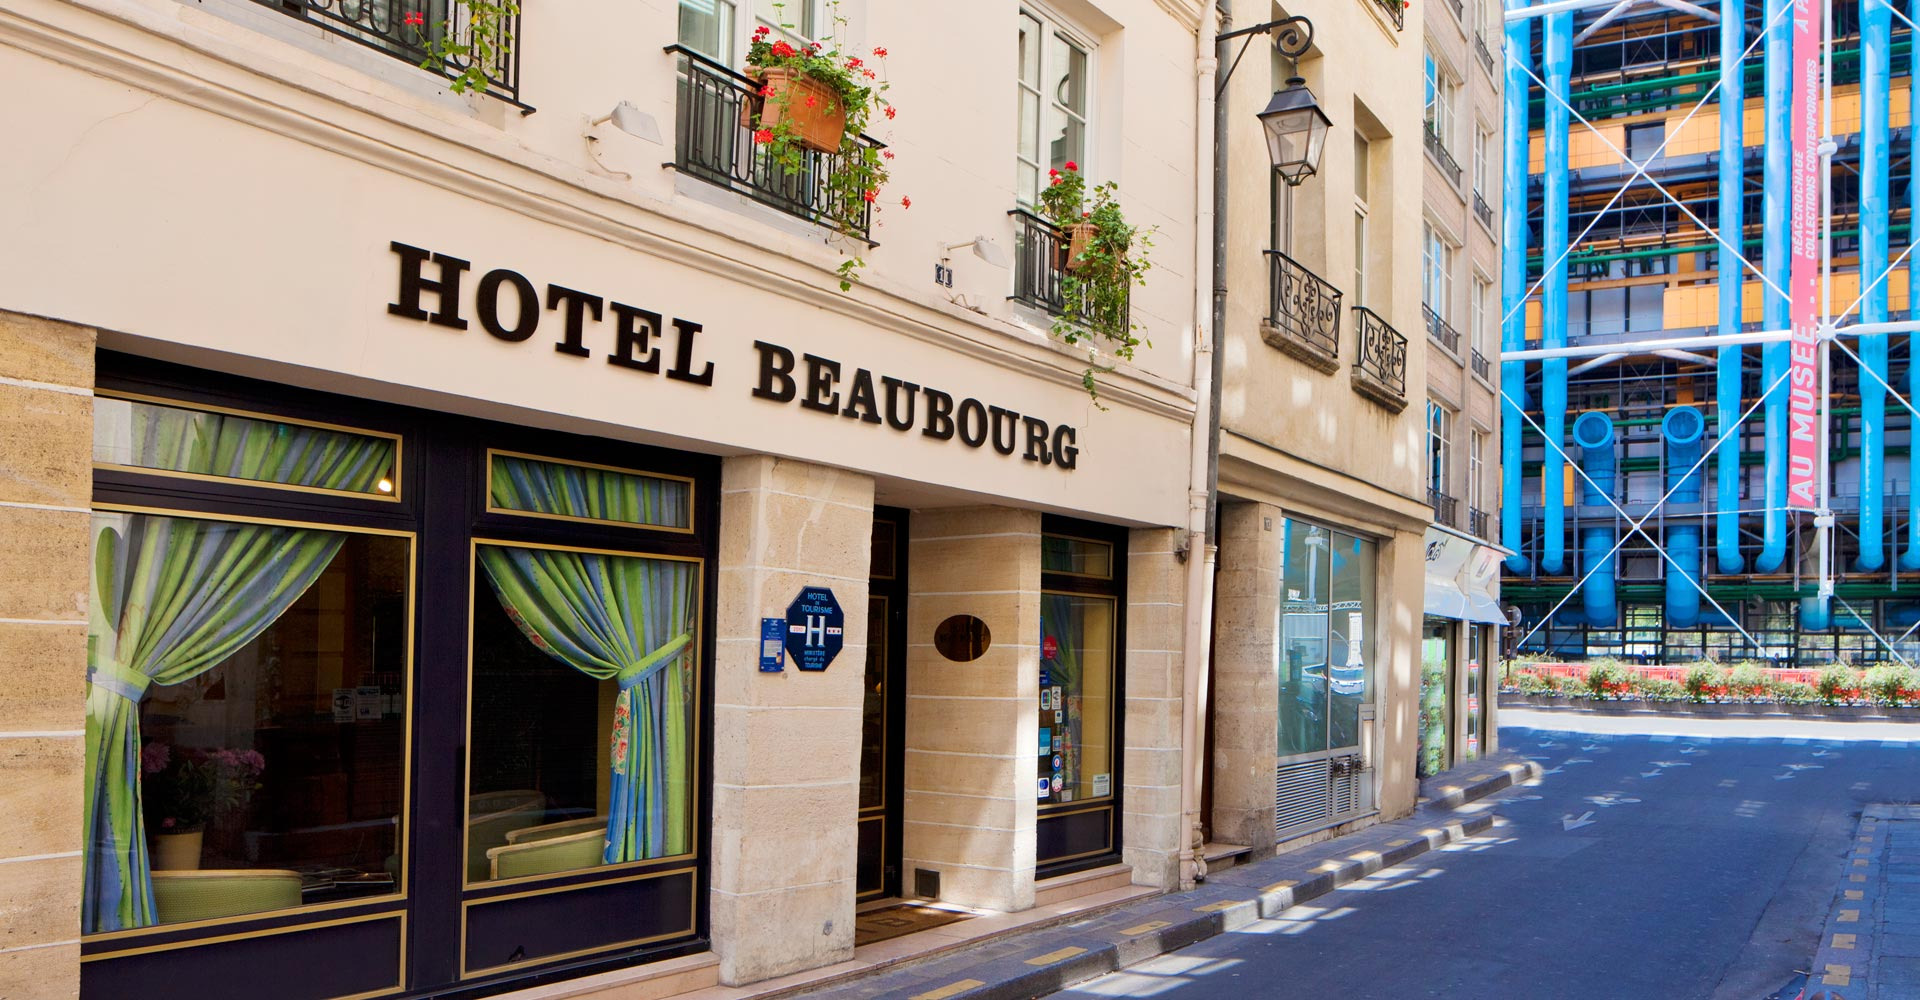 Hotel Beaubourg Paris Marais